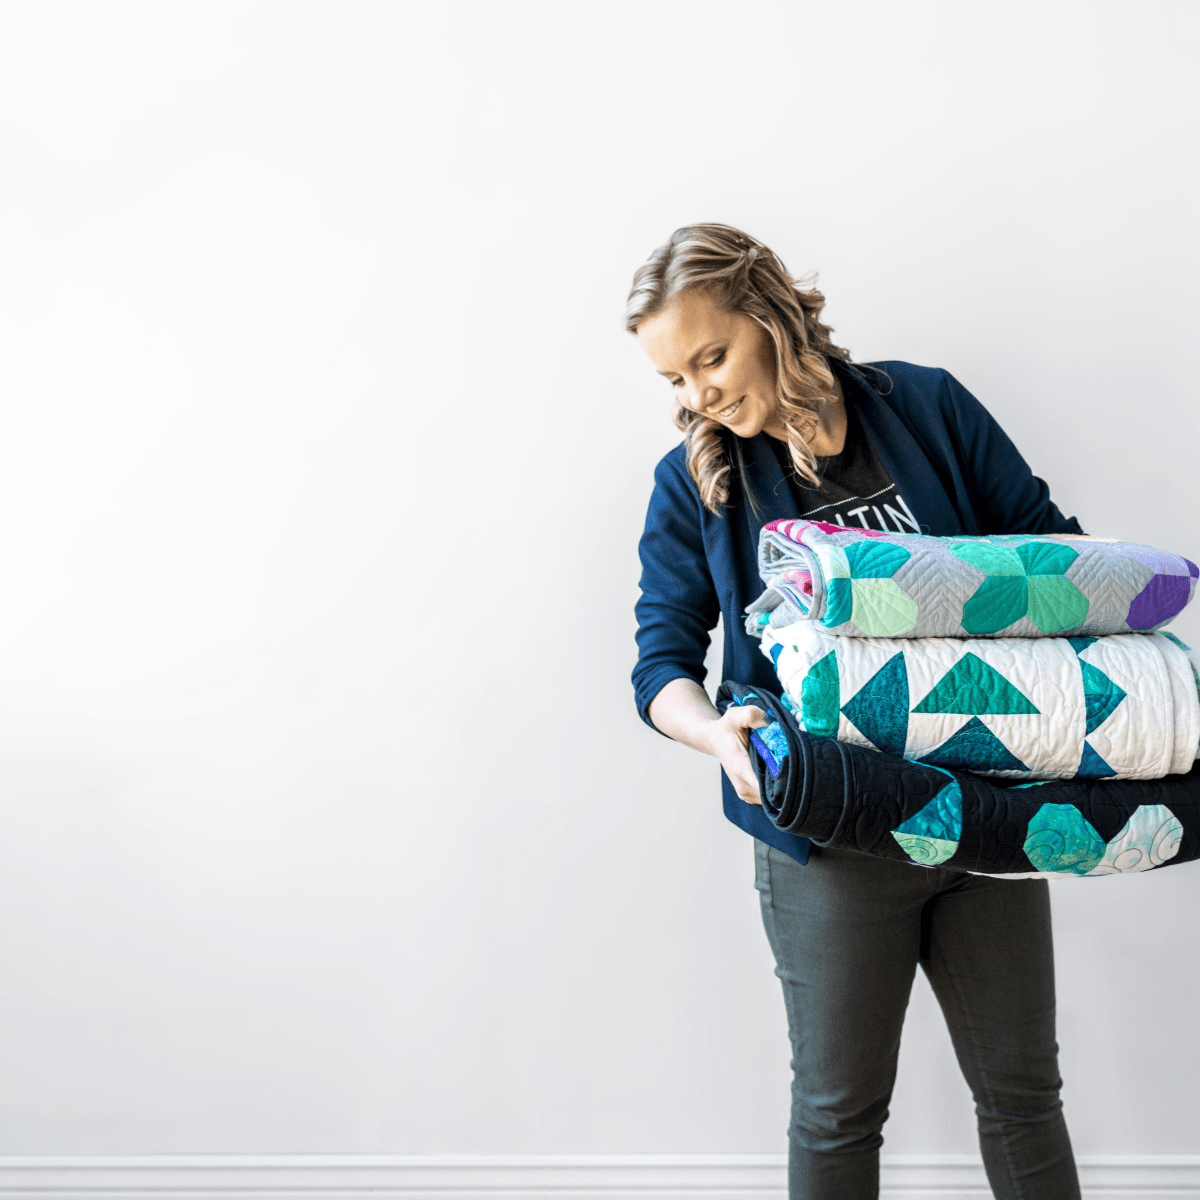 Bluprint Unlimited Deal: Get Free Quilt Or Knit Kit With Annual Bluprint Subscription!